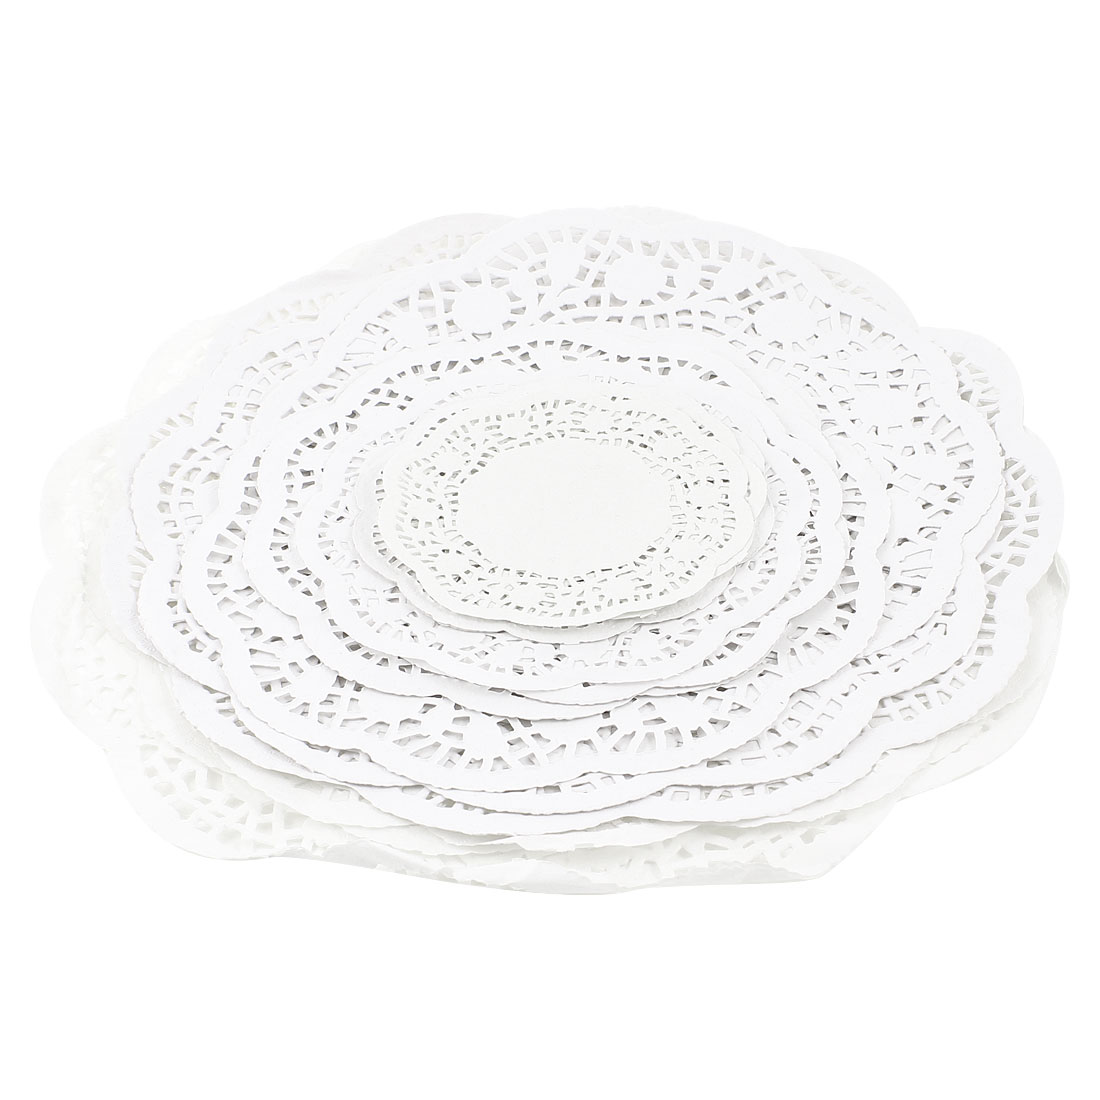 Round White Hollow Floral Printed Nonslip Table Cup Pad Paper Doyleys 36pcs